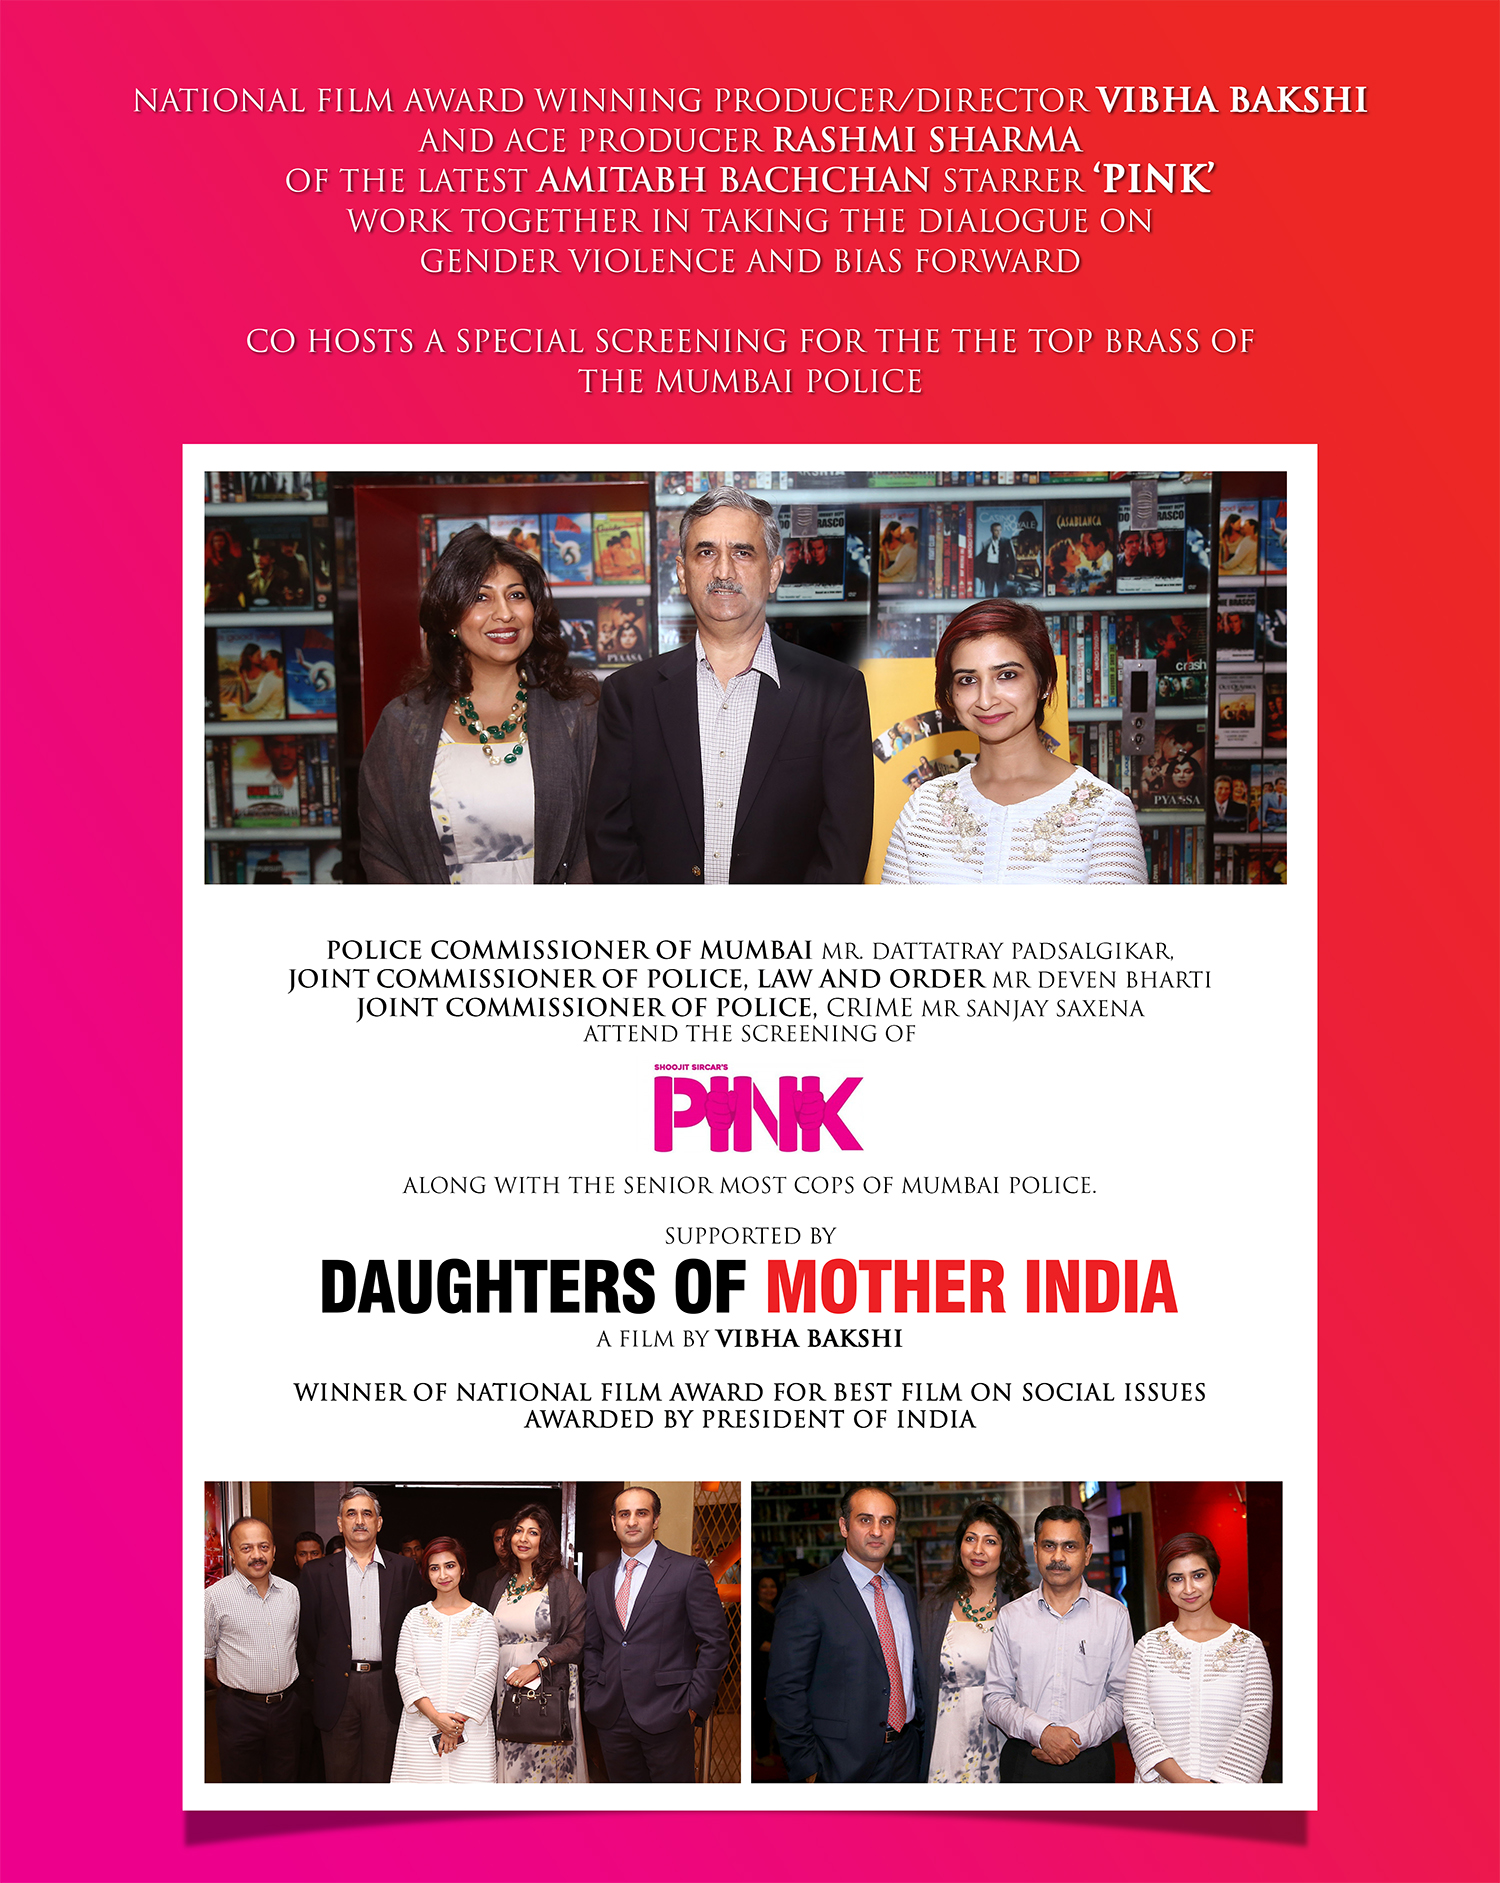 Special screening of 'Pink' held for Mumbai Police